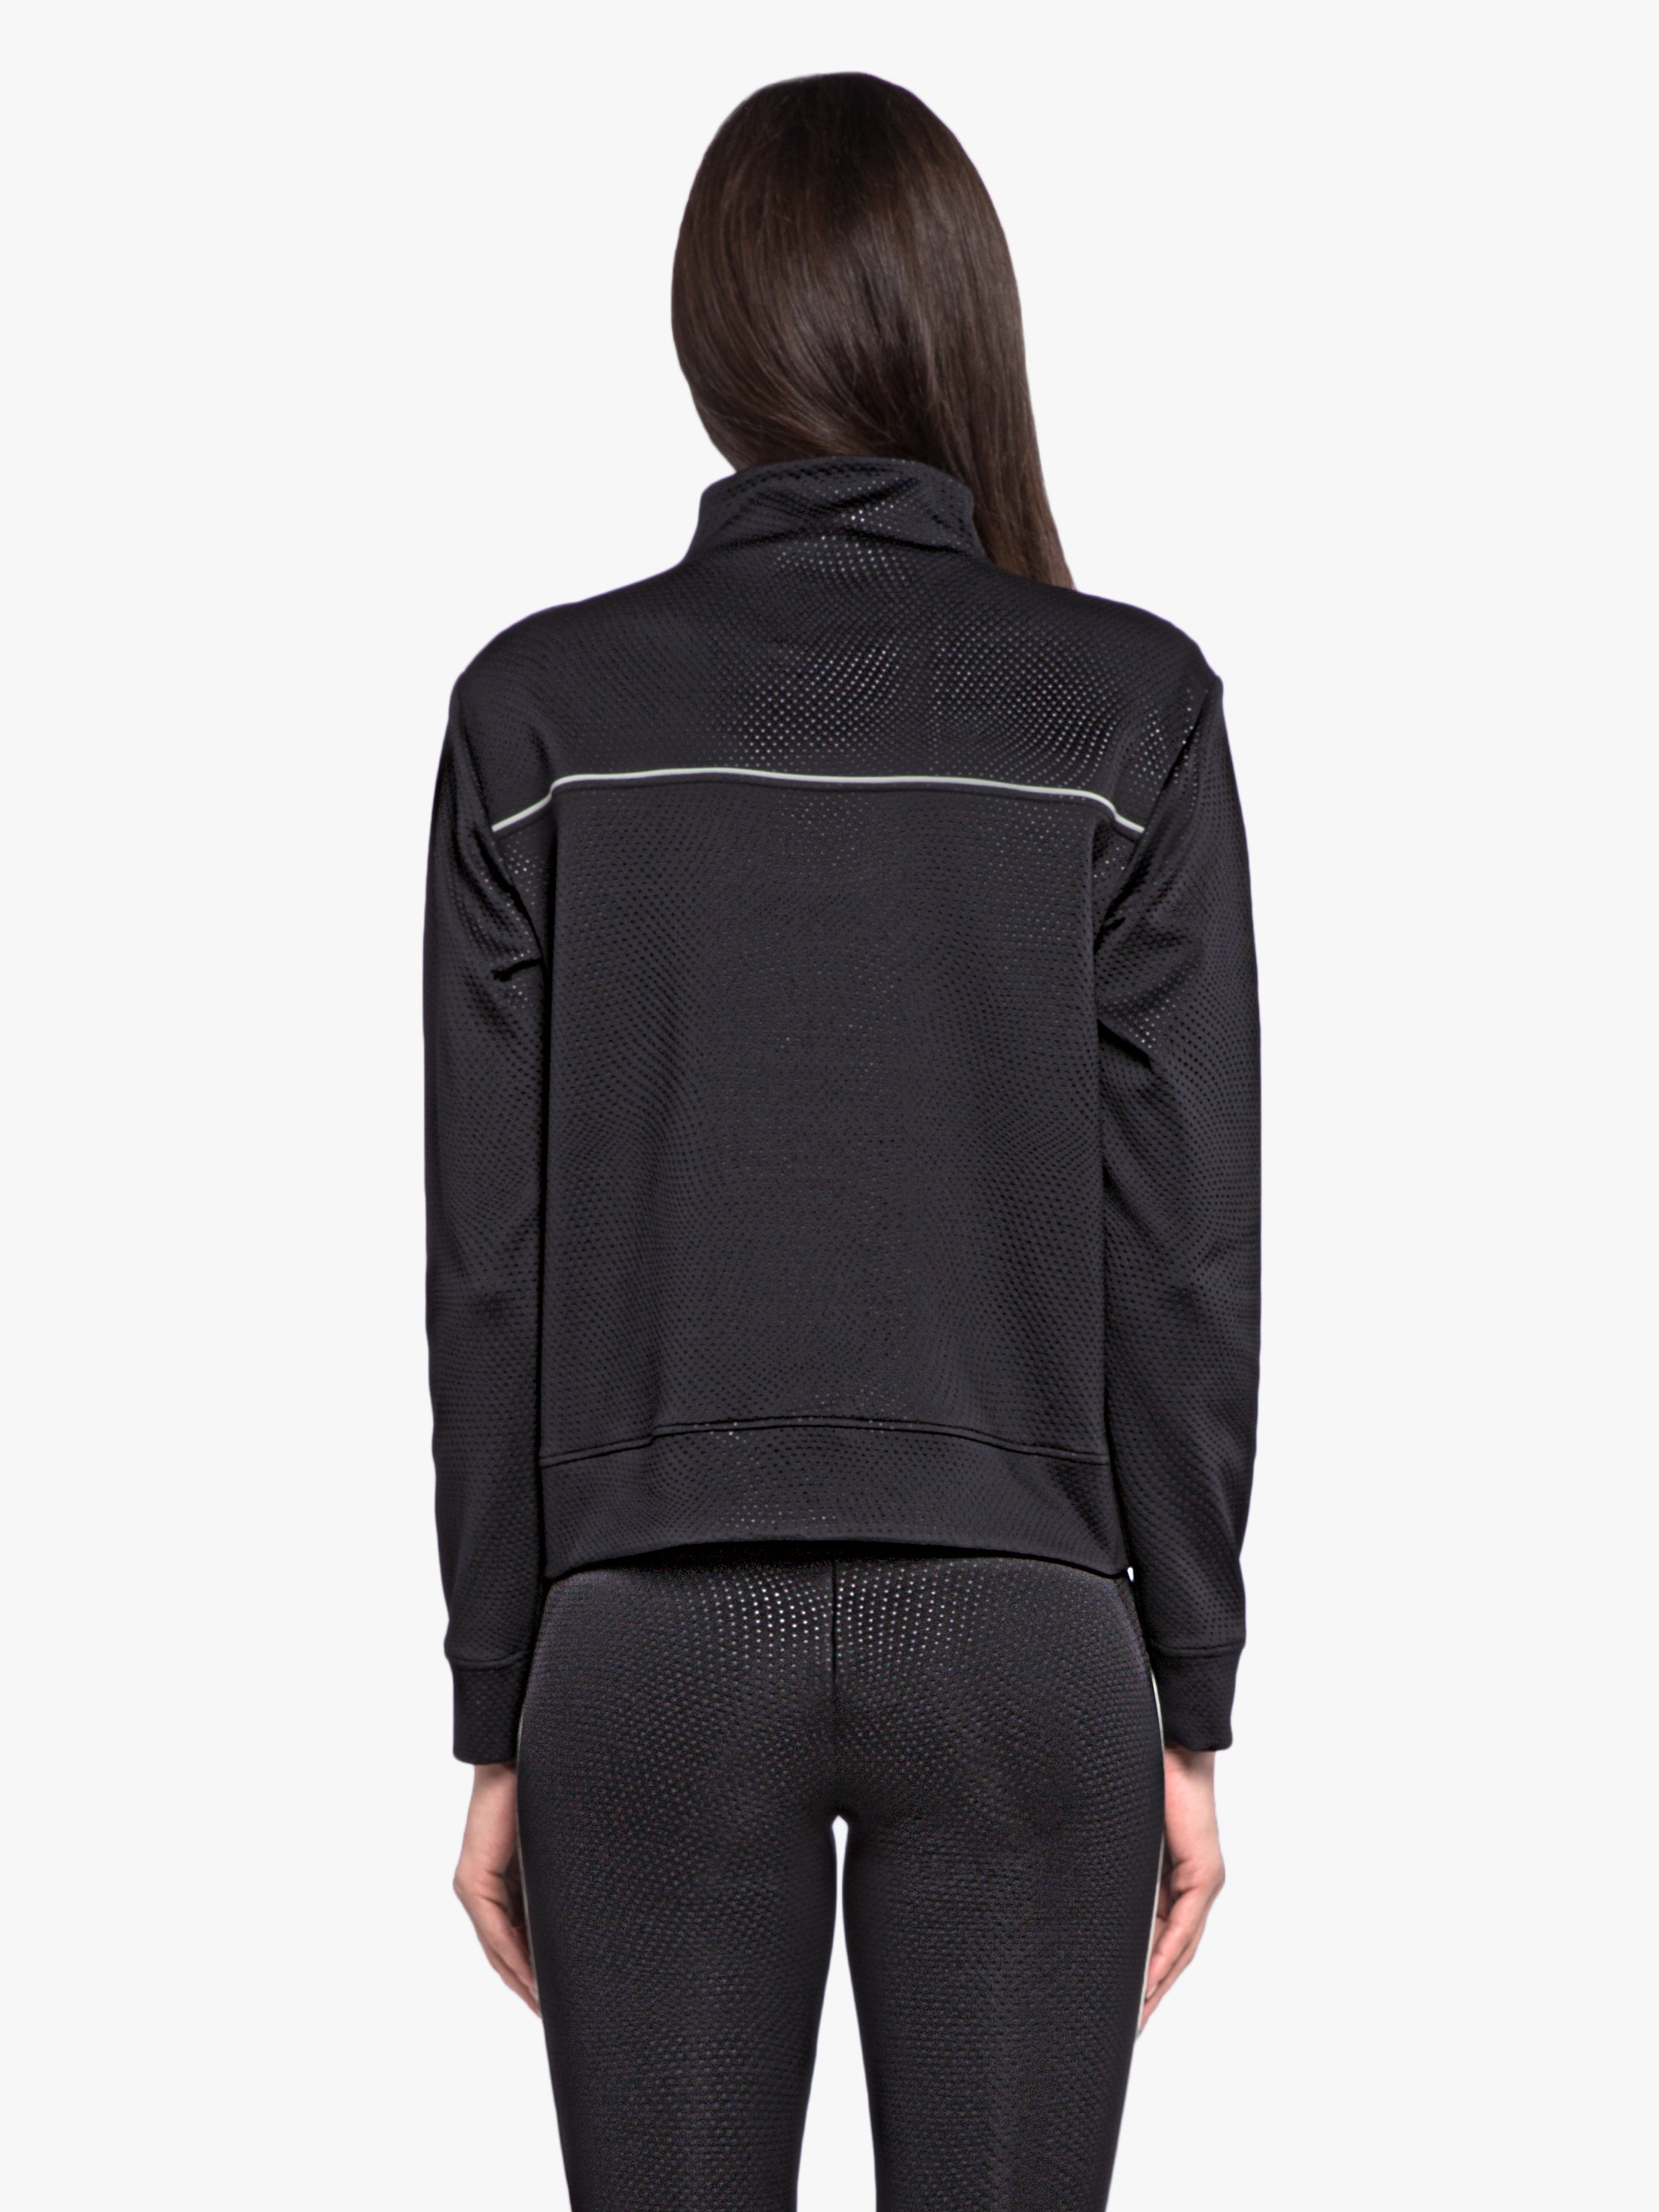 Kai Etch Sweatshirt - Black